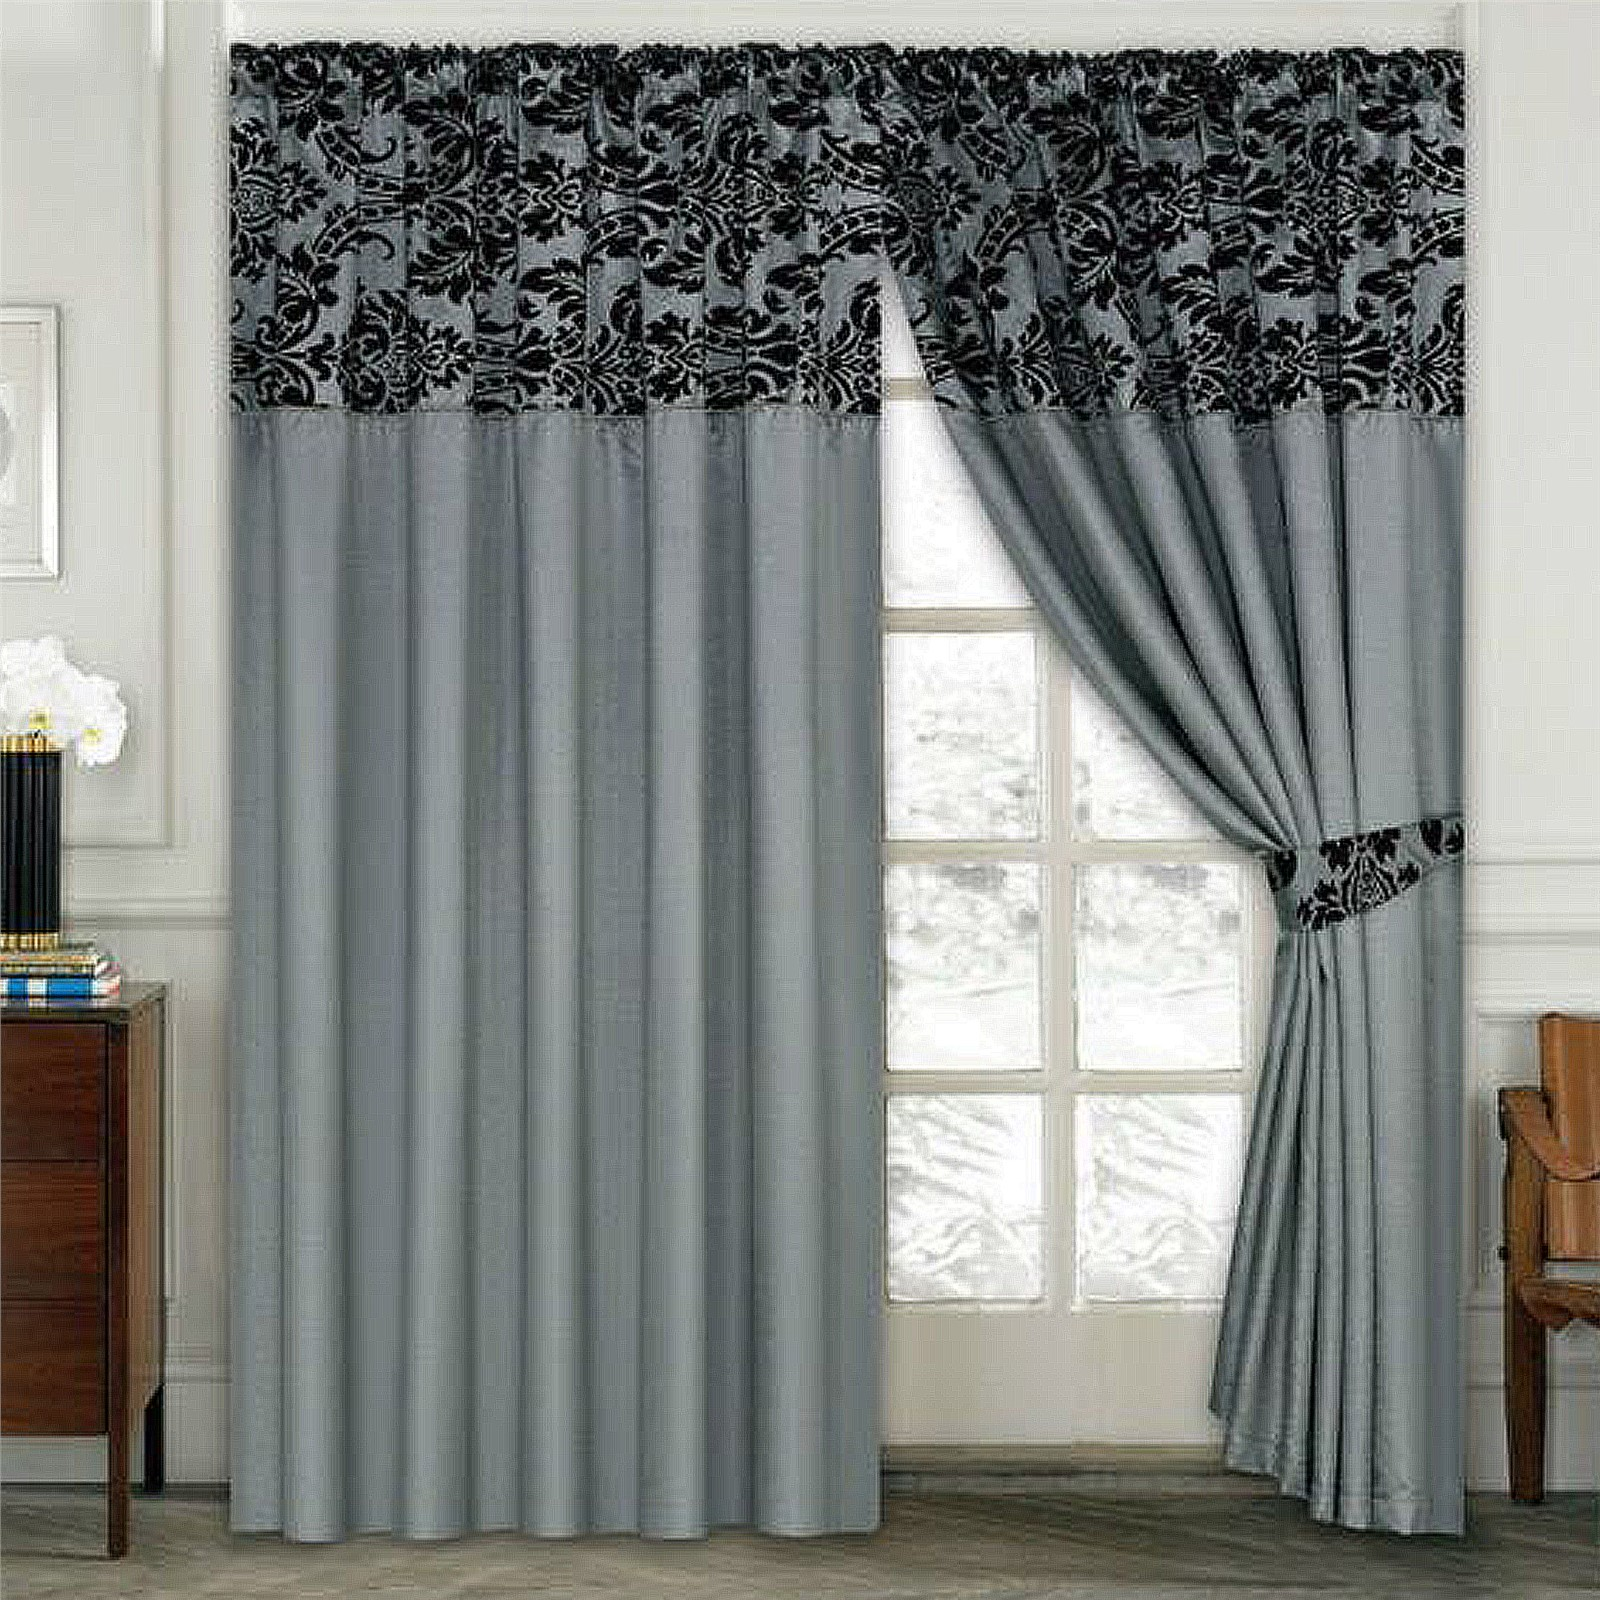 Luxury Damask Curtains Pair Of Half Flock Pencil Pleat Window Curtain Ebay Images